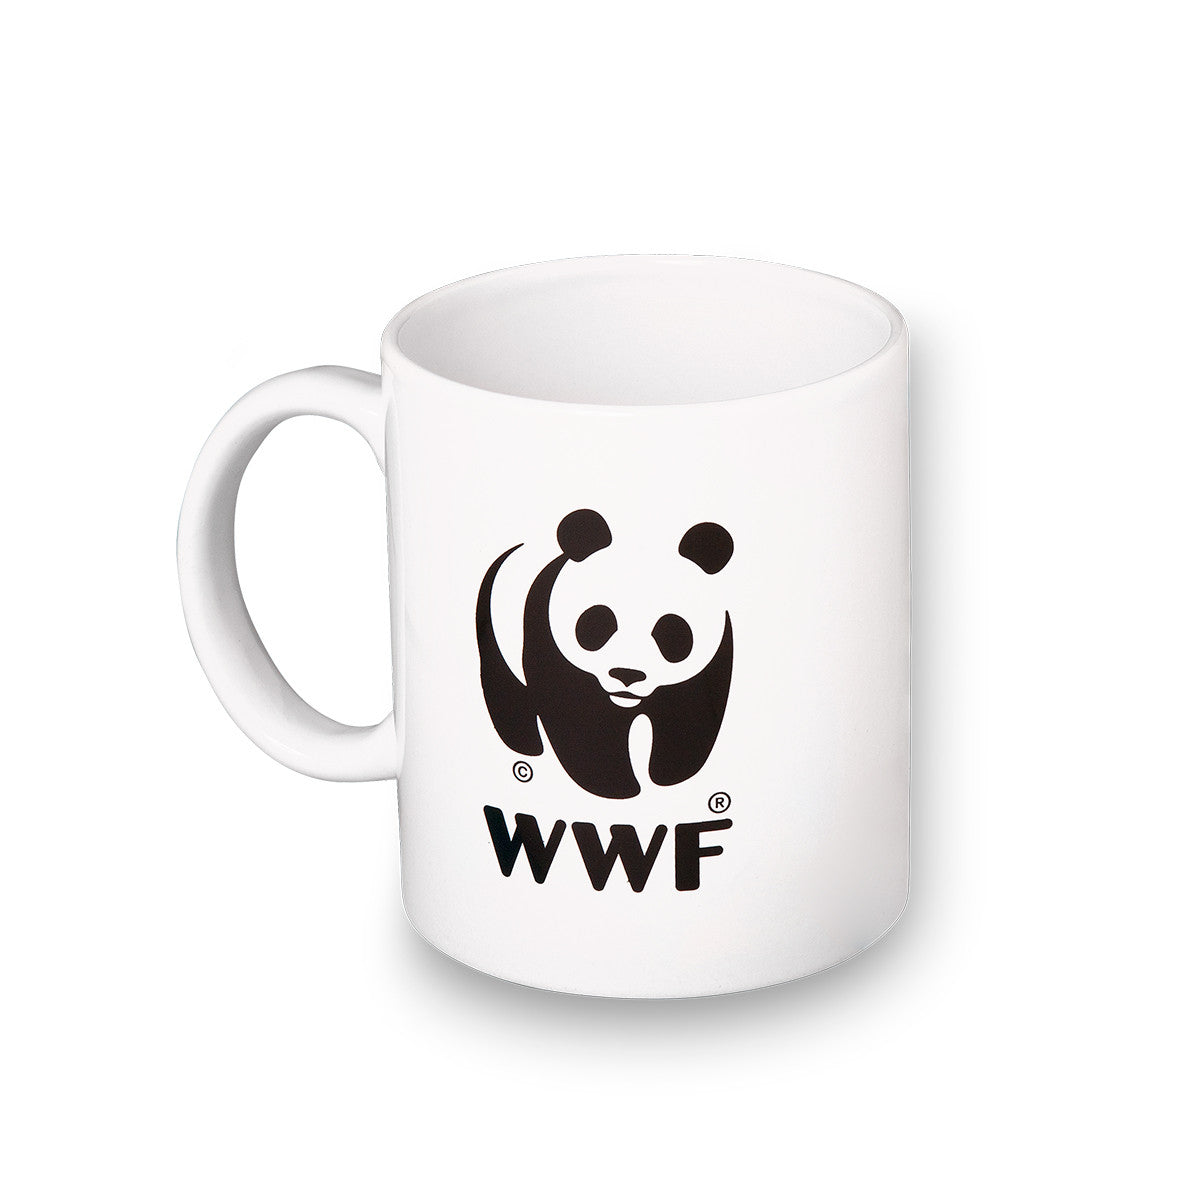 WWF Ceramic Mugs